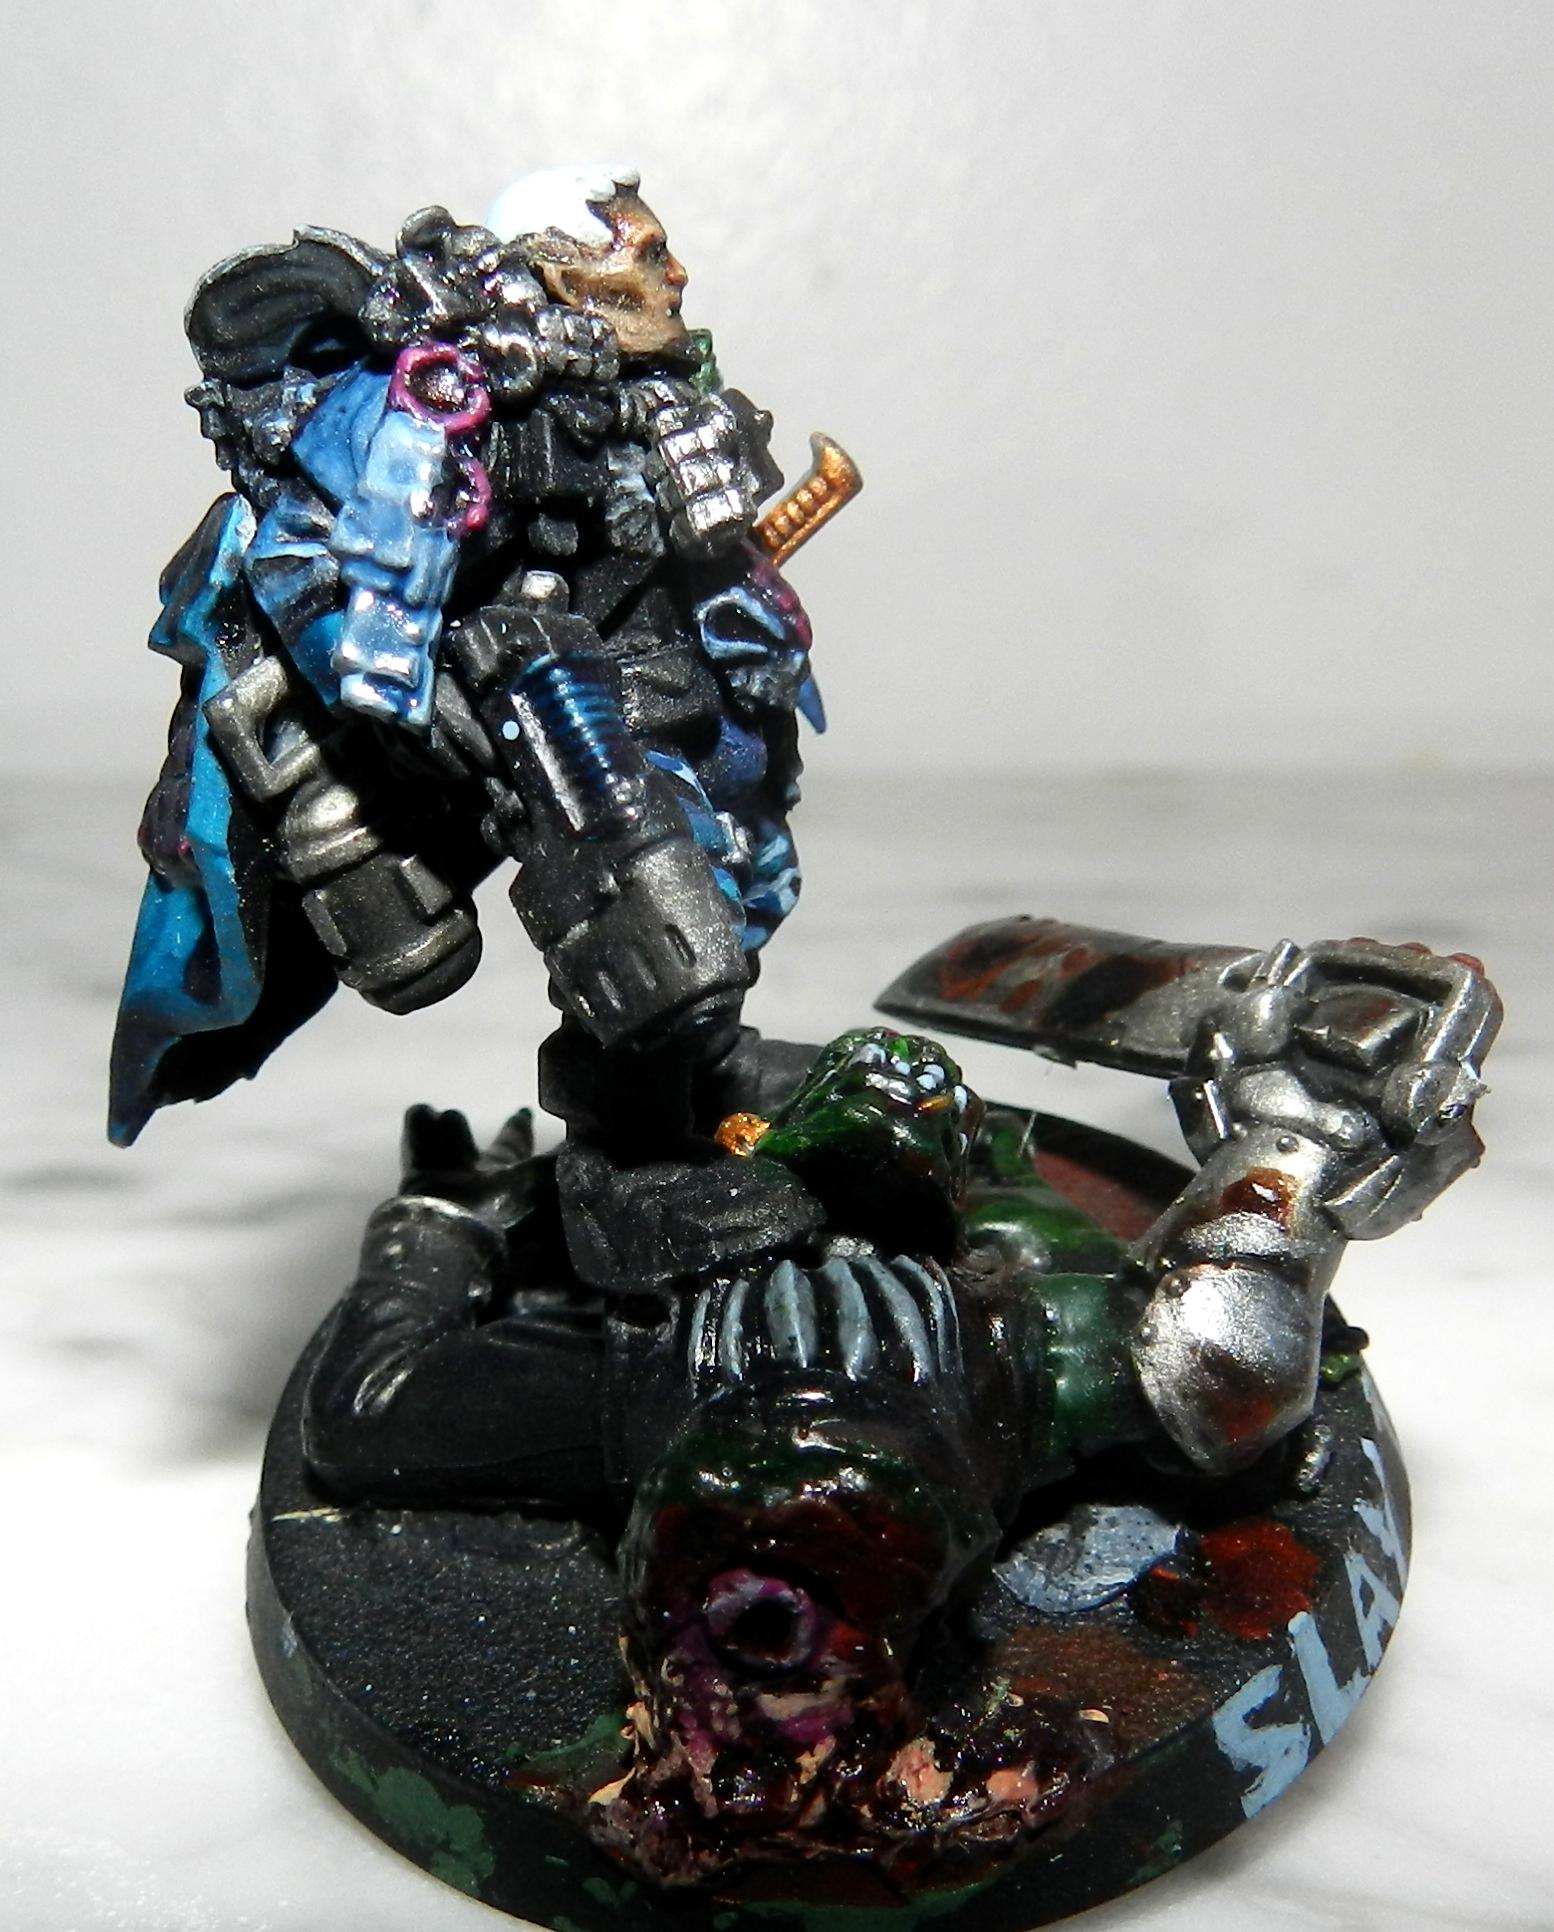 Armageddon, Blood, Boss, Cadians, Camouflage, Carapace, Ccs, Commander, Count As, Gore, Guardsmen, Headquarters, Nob, Officer, Ork Abuse, Orks, Plasma Pistol, Power Fist, Power Sword, Purity Seal, Urban, Veteran, Warboss, Warhammer 40,000, Warlord